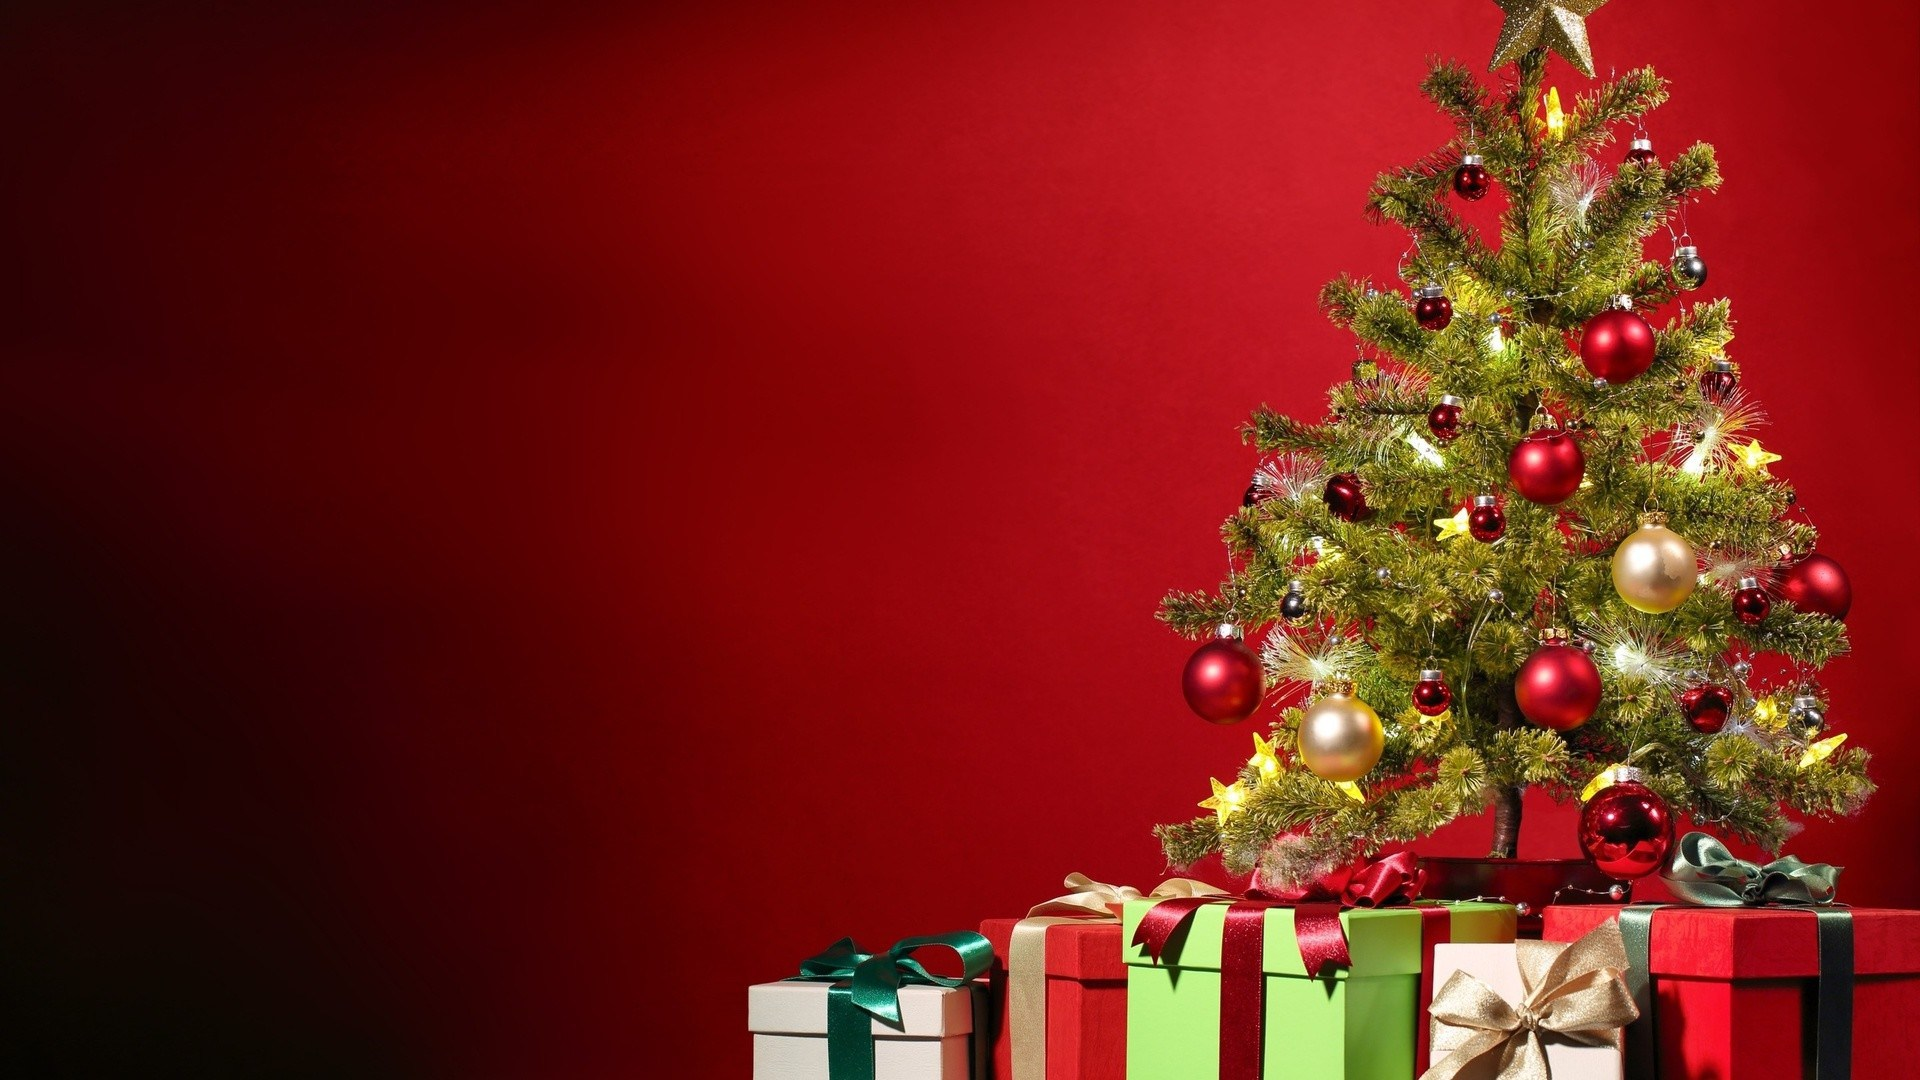 Merry Christmas tree free download wallpapers